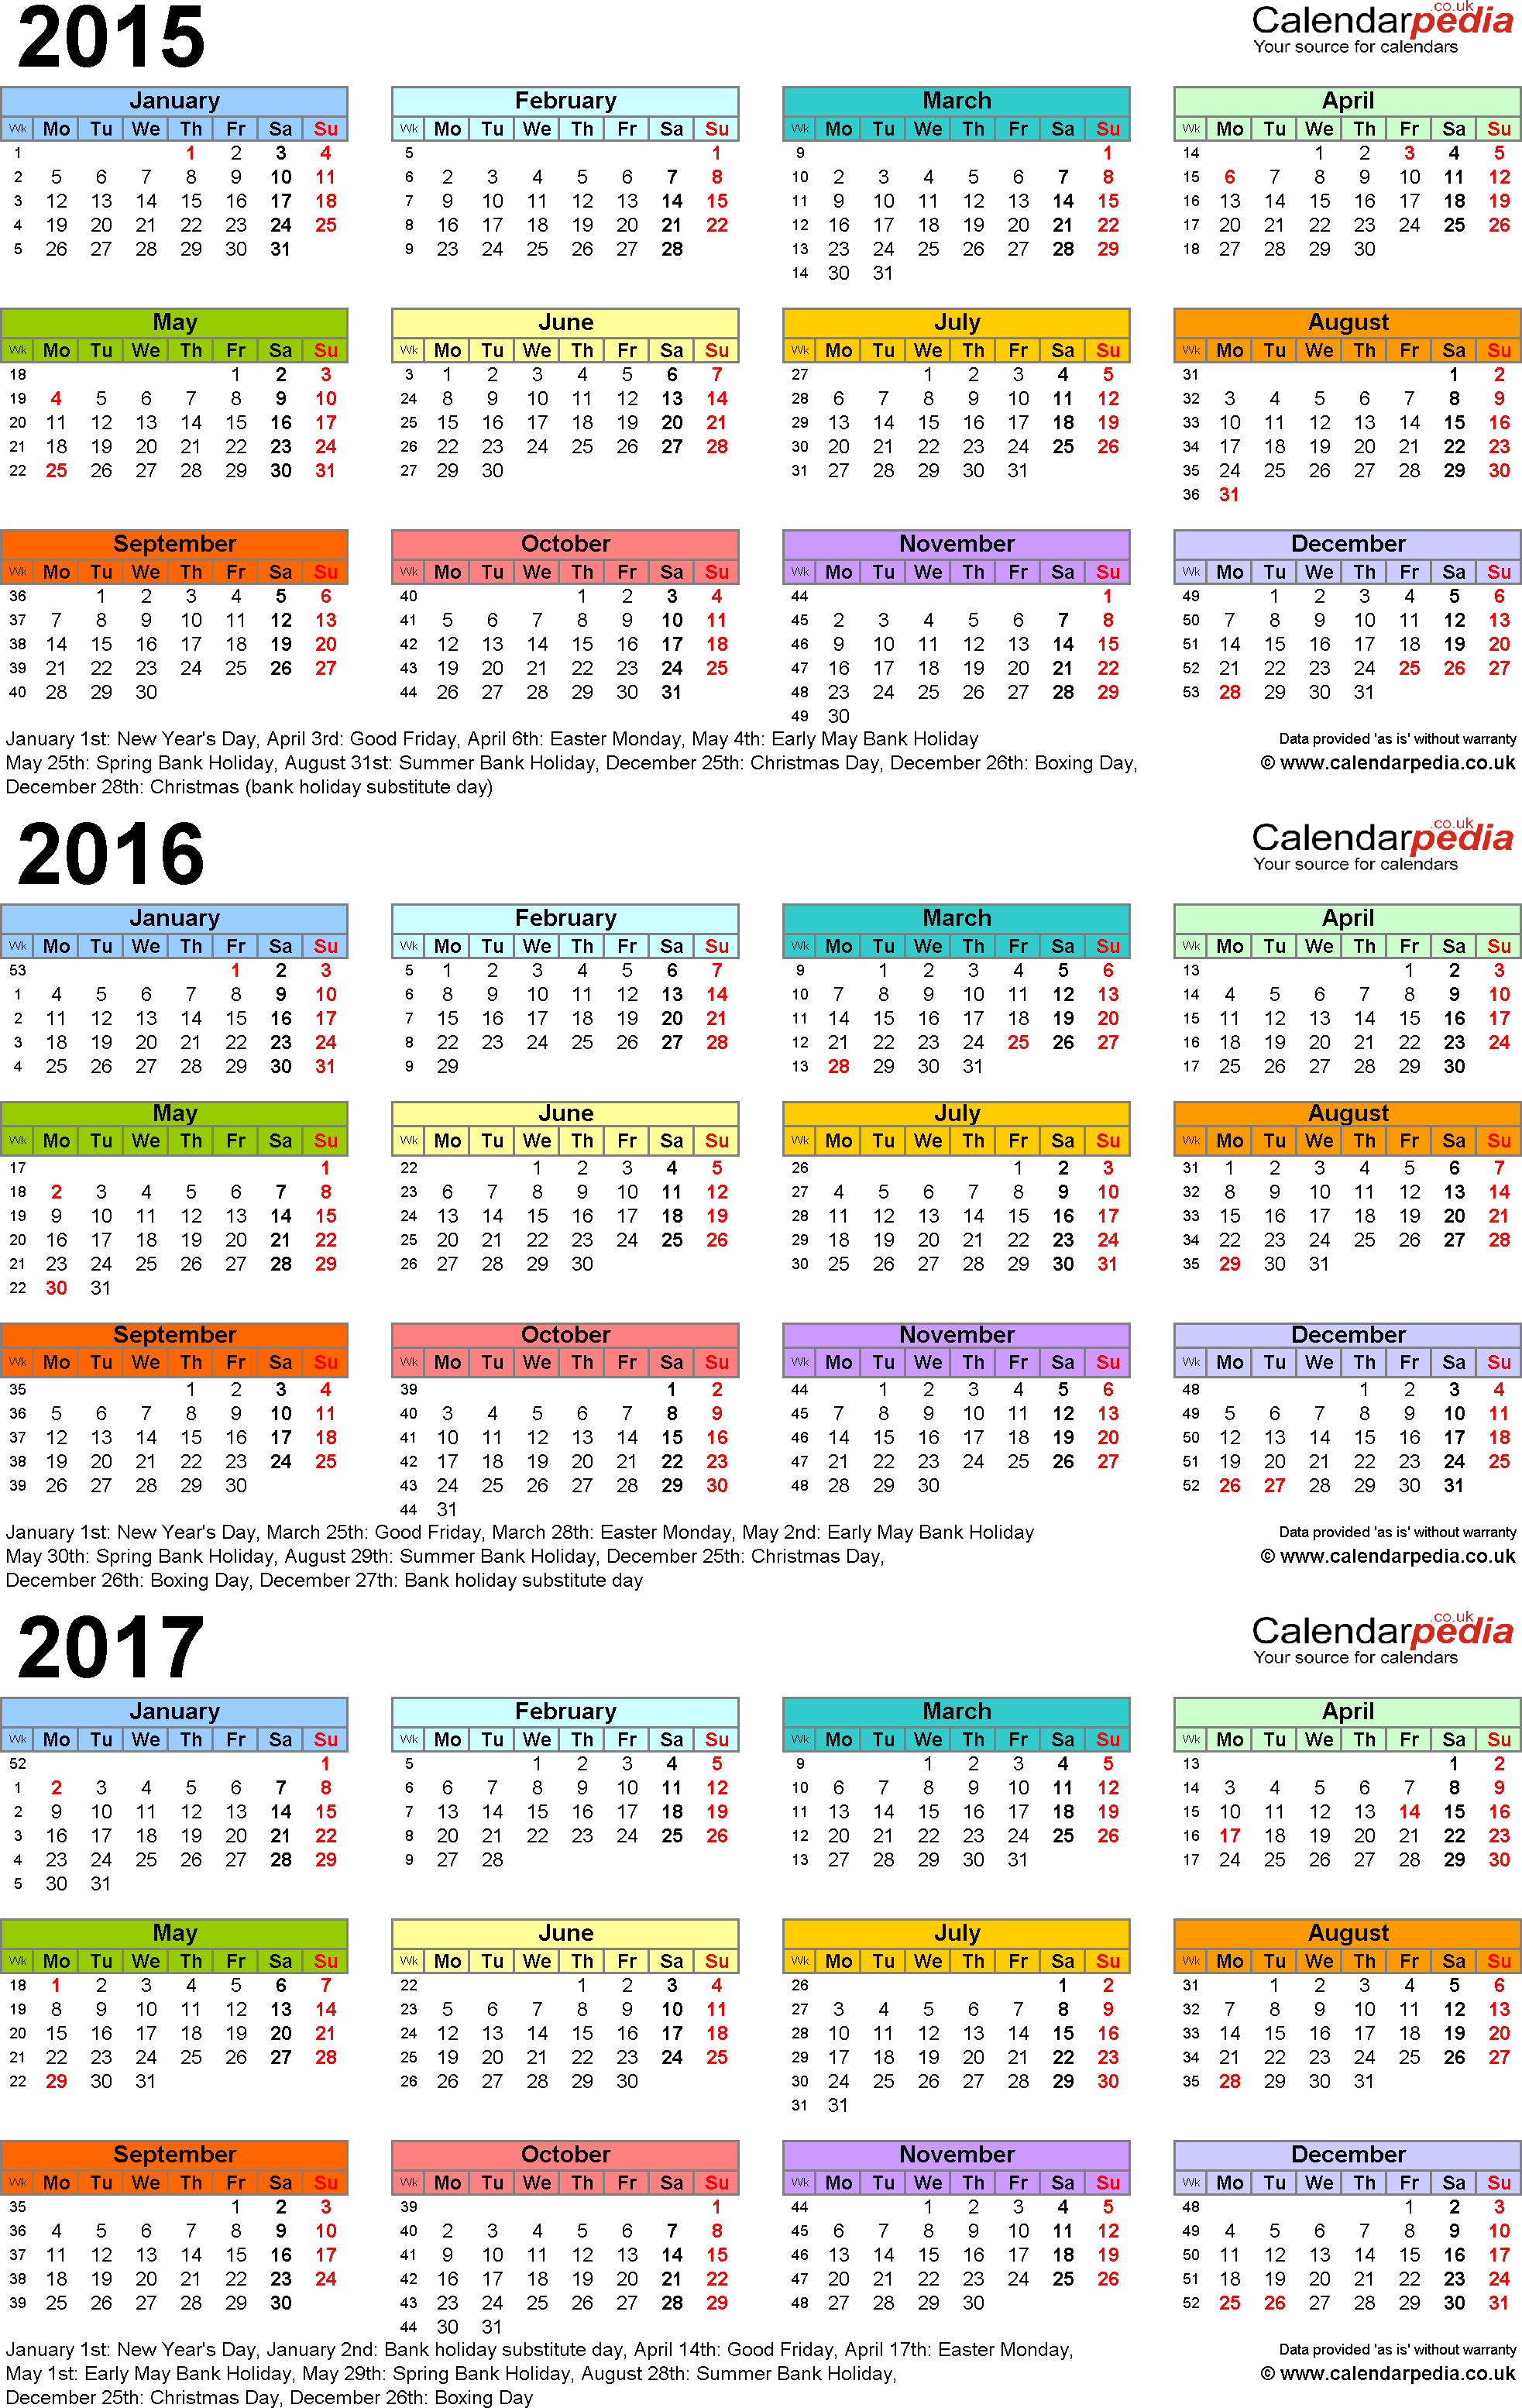 Download Template 3: PDF template for three year calendar 2015-2017 in colour (portrait orientation, 1 page, A4)